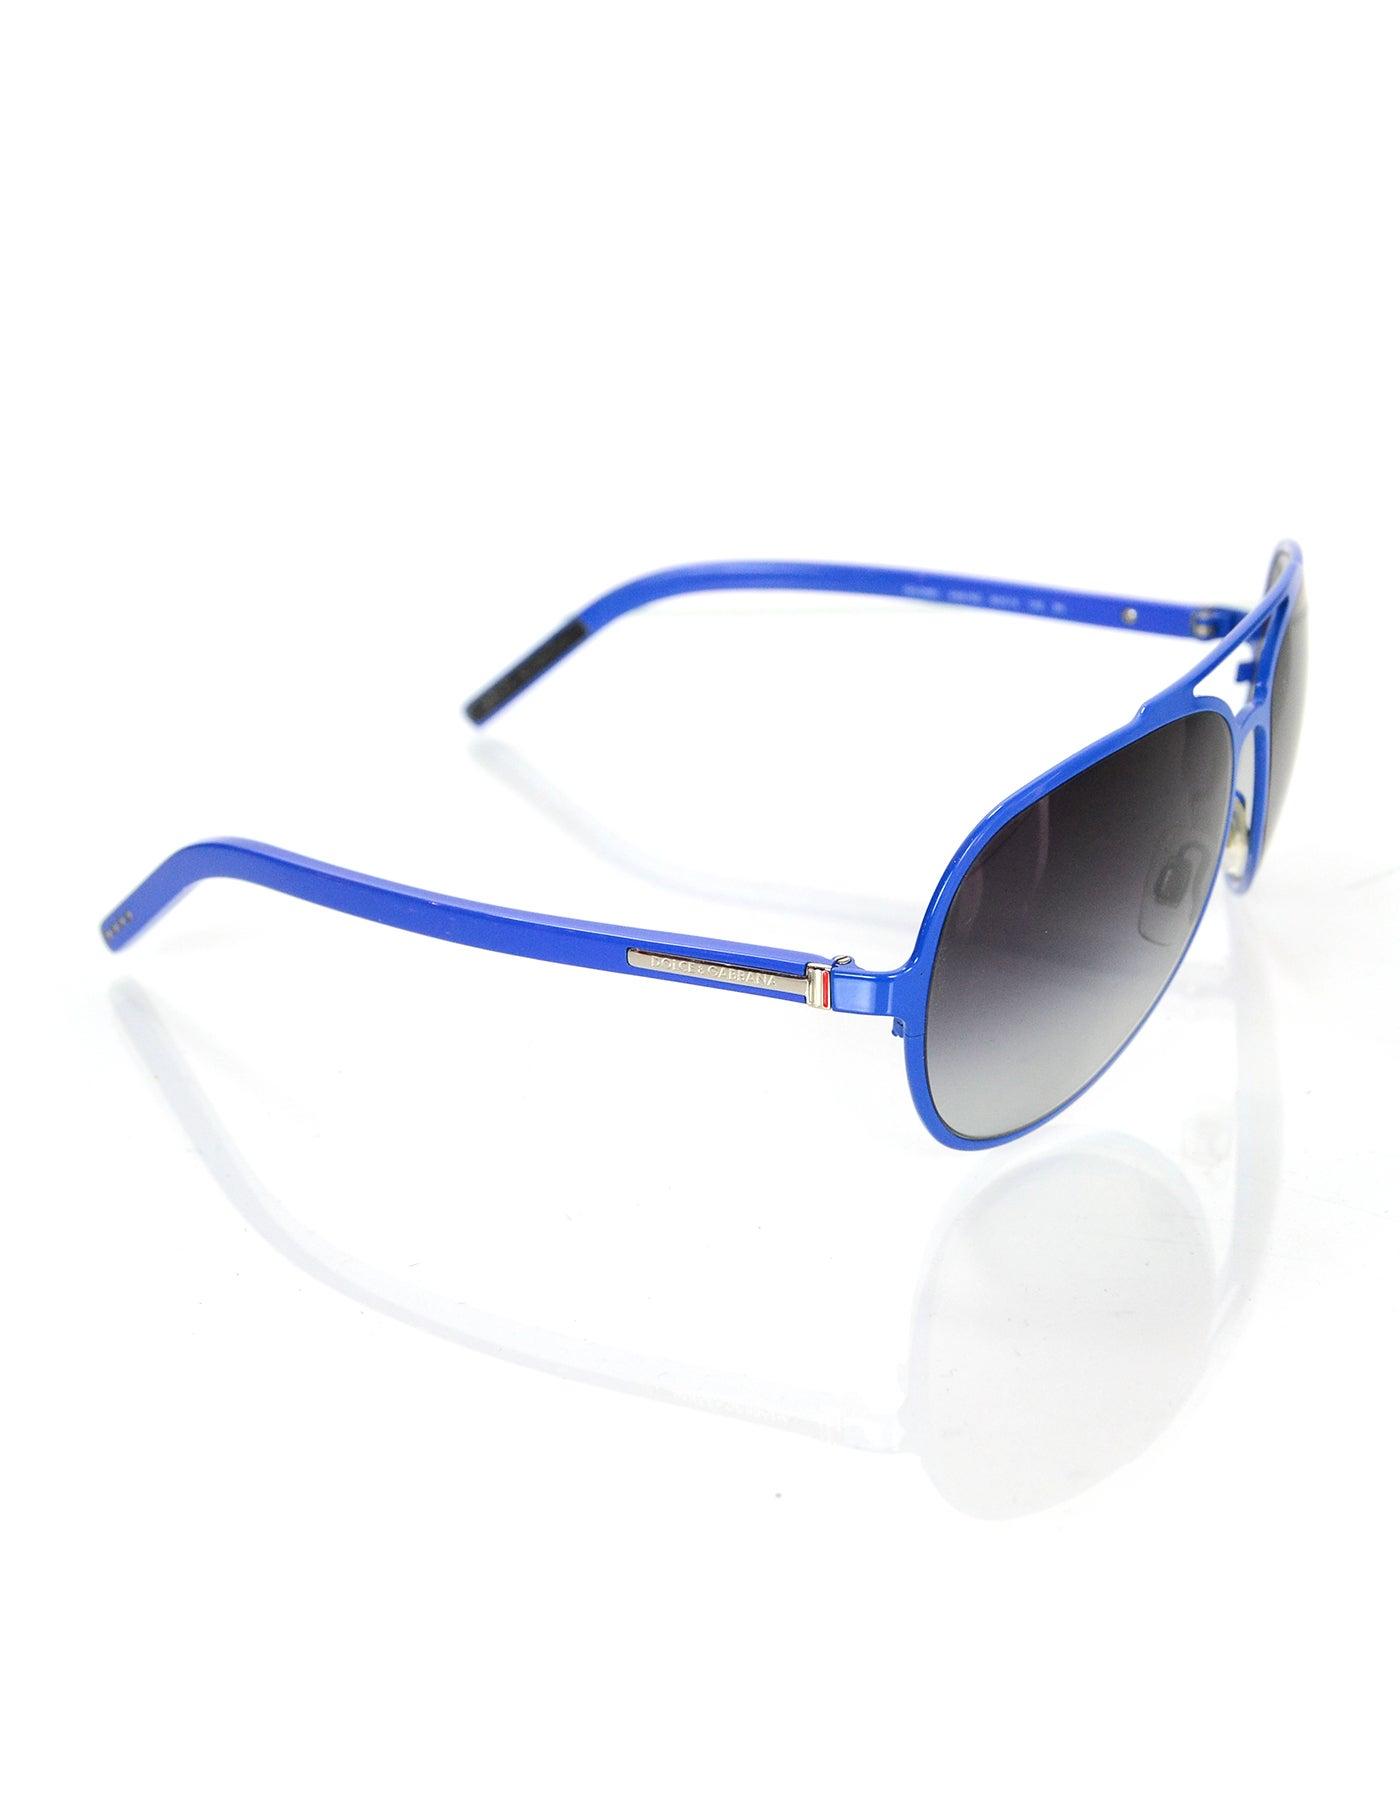 d520a4c9f833 Dolce and Gabbana Blue Aviator Sunglasses For Sale at 1stdibs